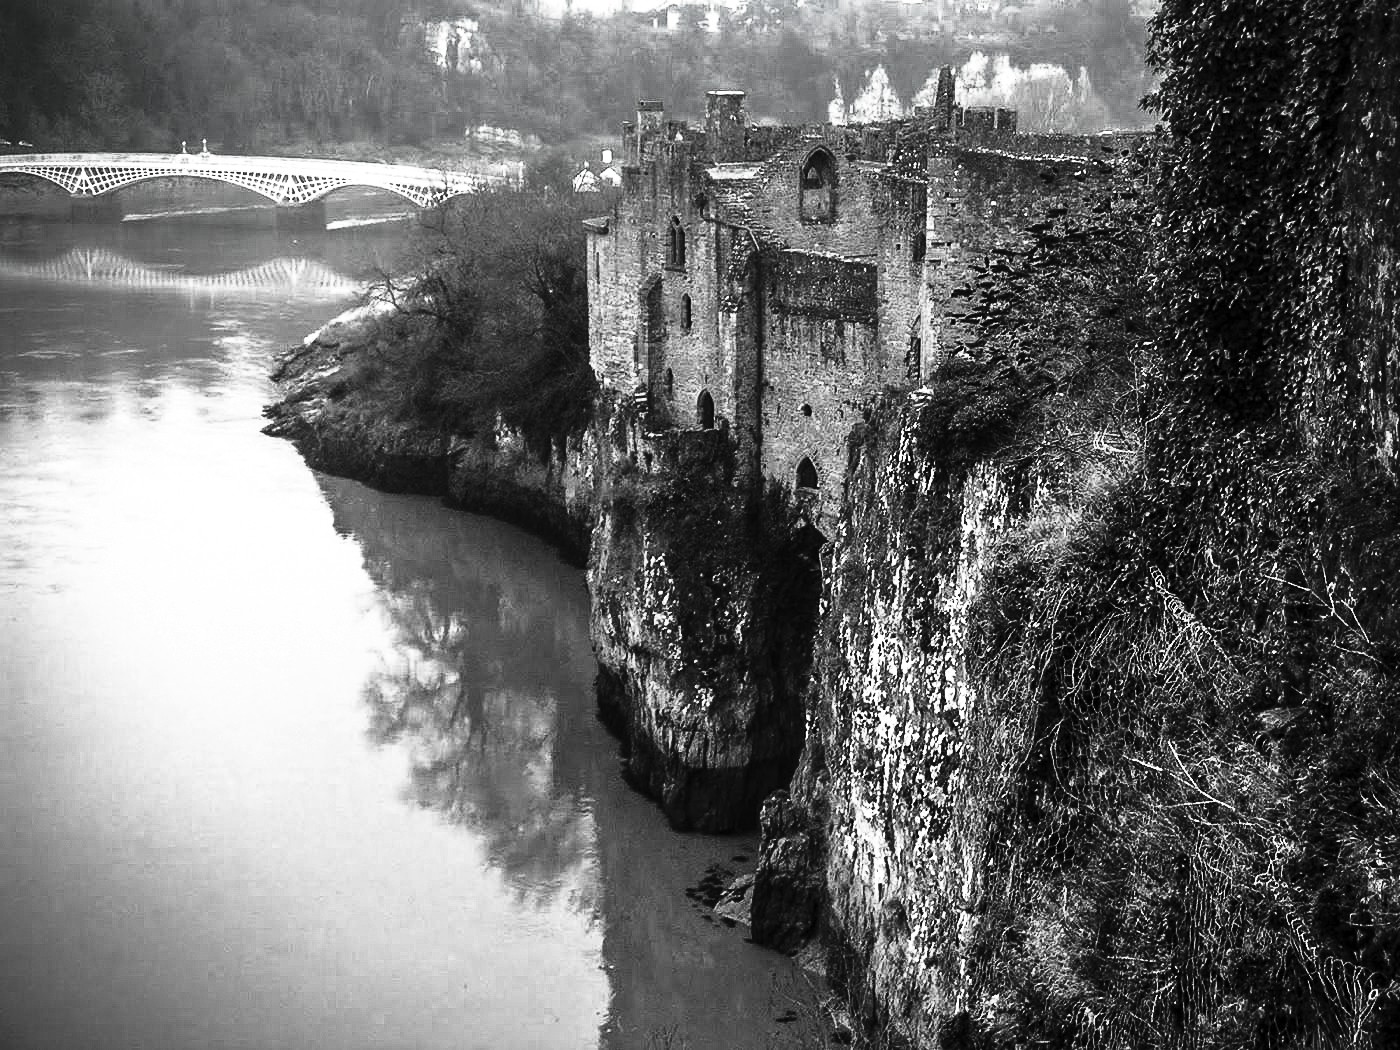 16 Fairytale Castles You Must See in Wales! Beaumaris Castle Caernarfon Castle Caerphilly Castle Carreg Cennen Castle Castell Coch Chepstow Castle Conwy Castle Criccieth Castle Denbigh Castle Dolwyddelan Castle Harlech Castle Kidwelly Castle Raglan Castle St Davids Bishop's Palace Tintern Abbey Tretower Court & Castle Weobley Castle (6)